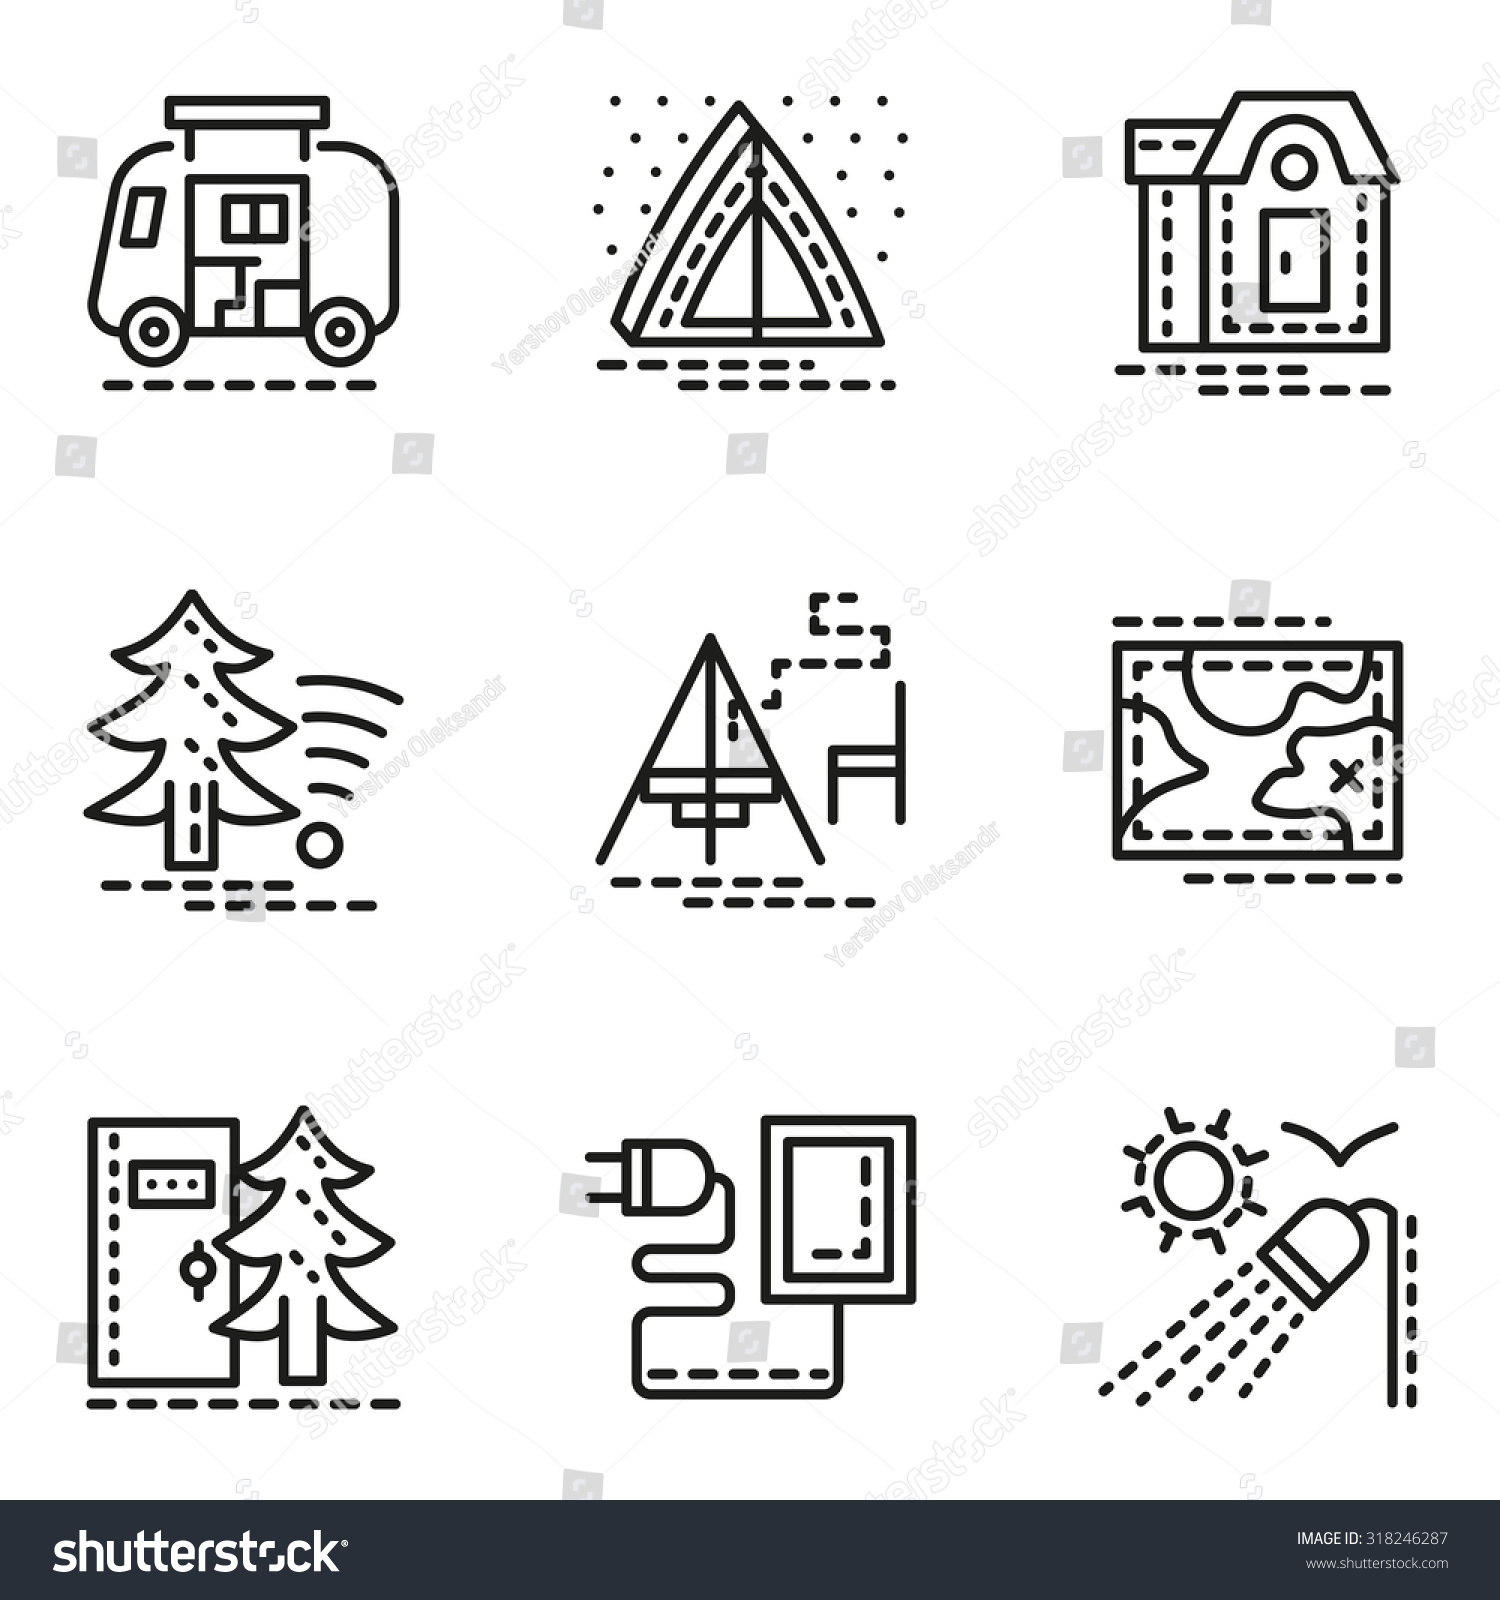 Symbols comfort camping flat line style stock vector 318246287 symbols of comfort camping flat line style vector icons set tent navigation biocorpaavc